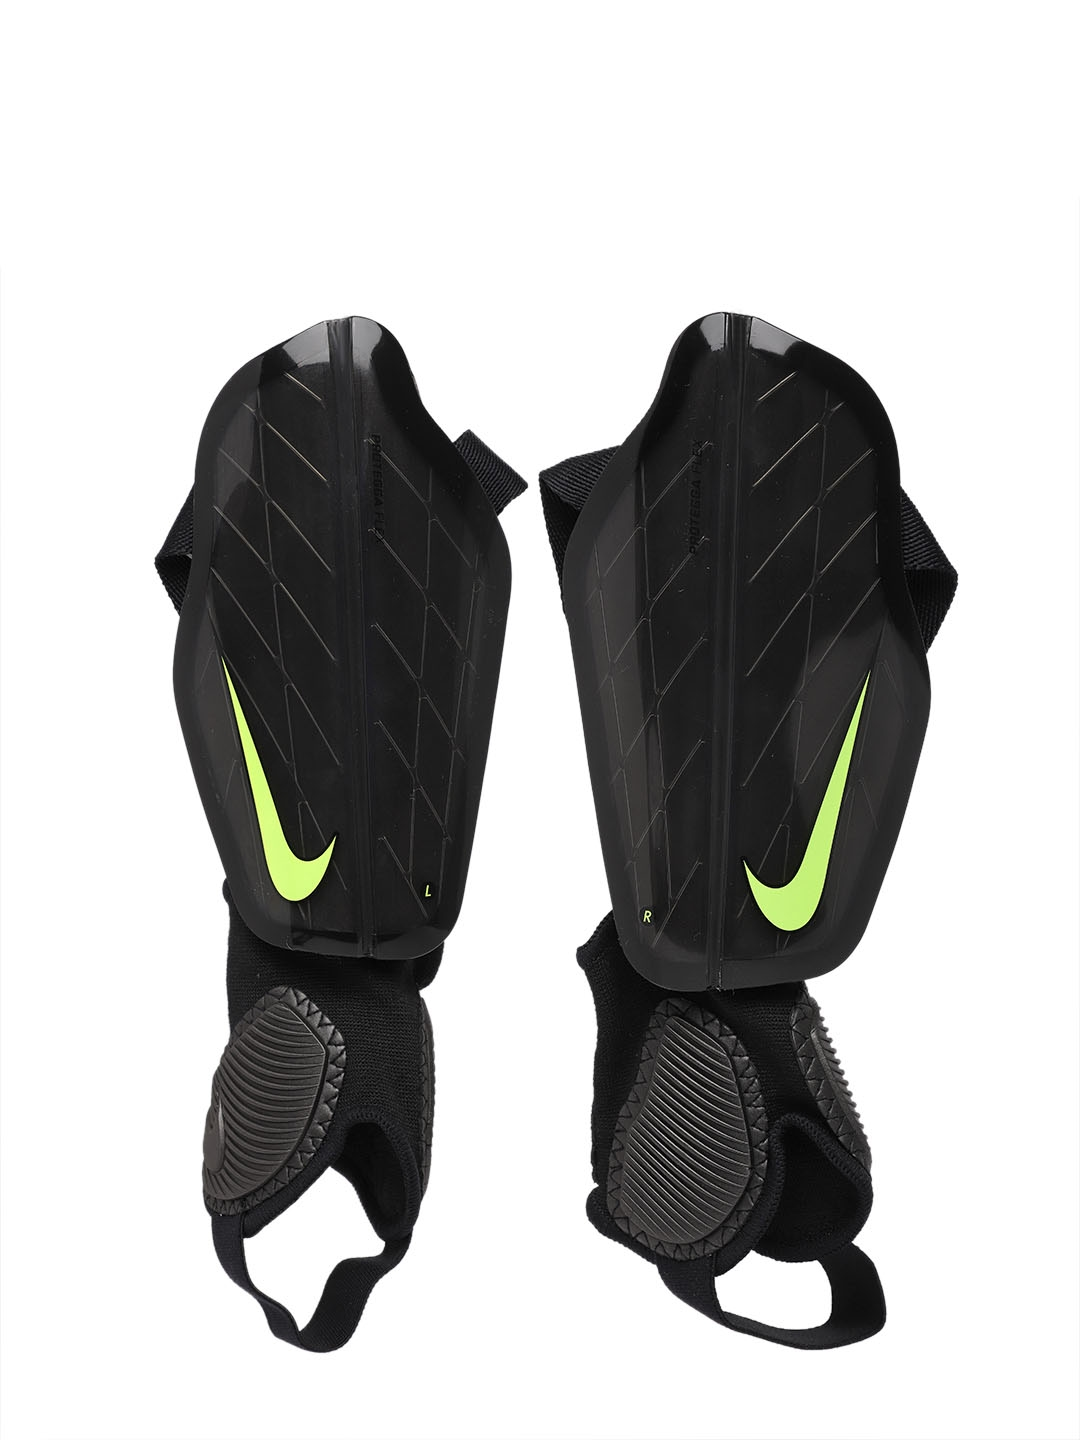 c497383f572a Buy Nike Unisex Black Protegga Flex Football Shin Guards - Sports ...